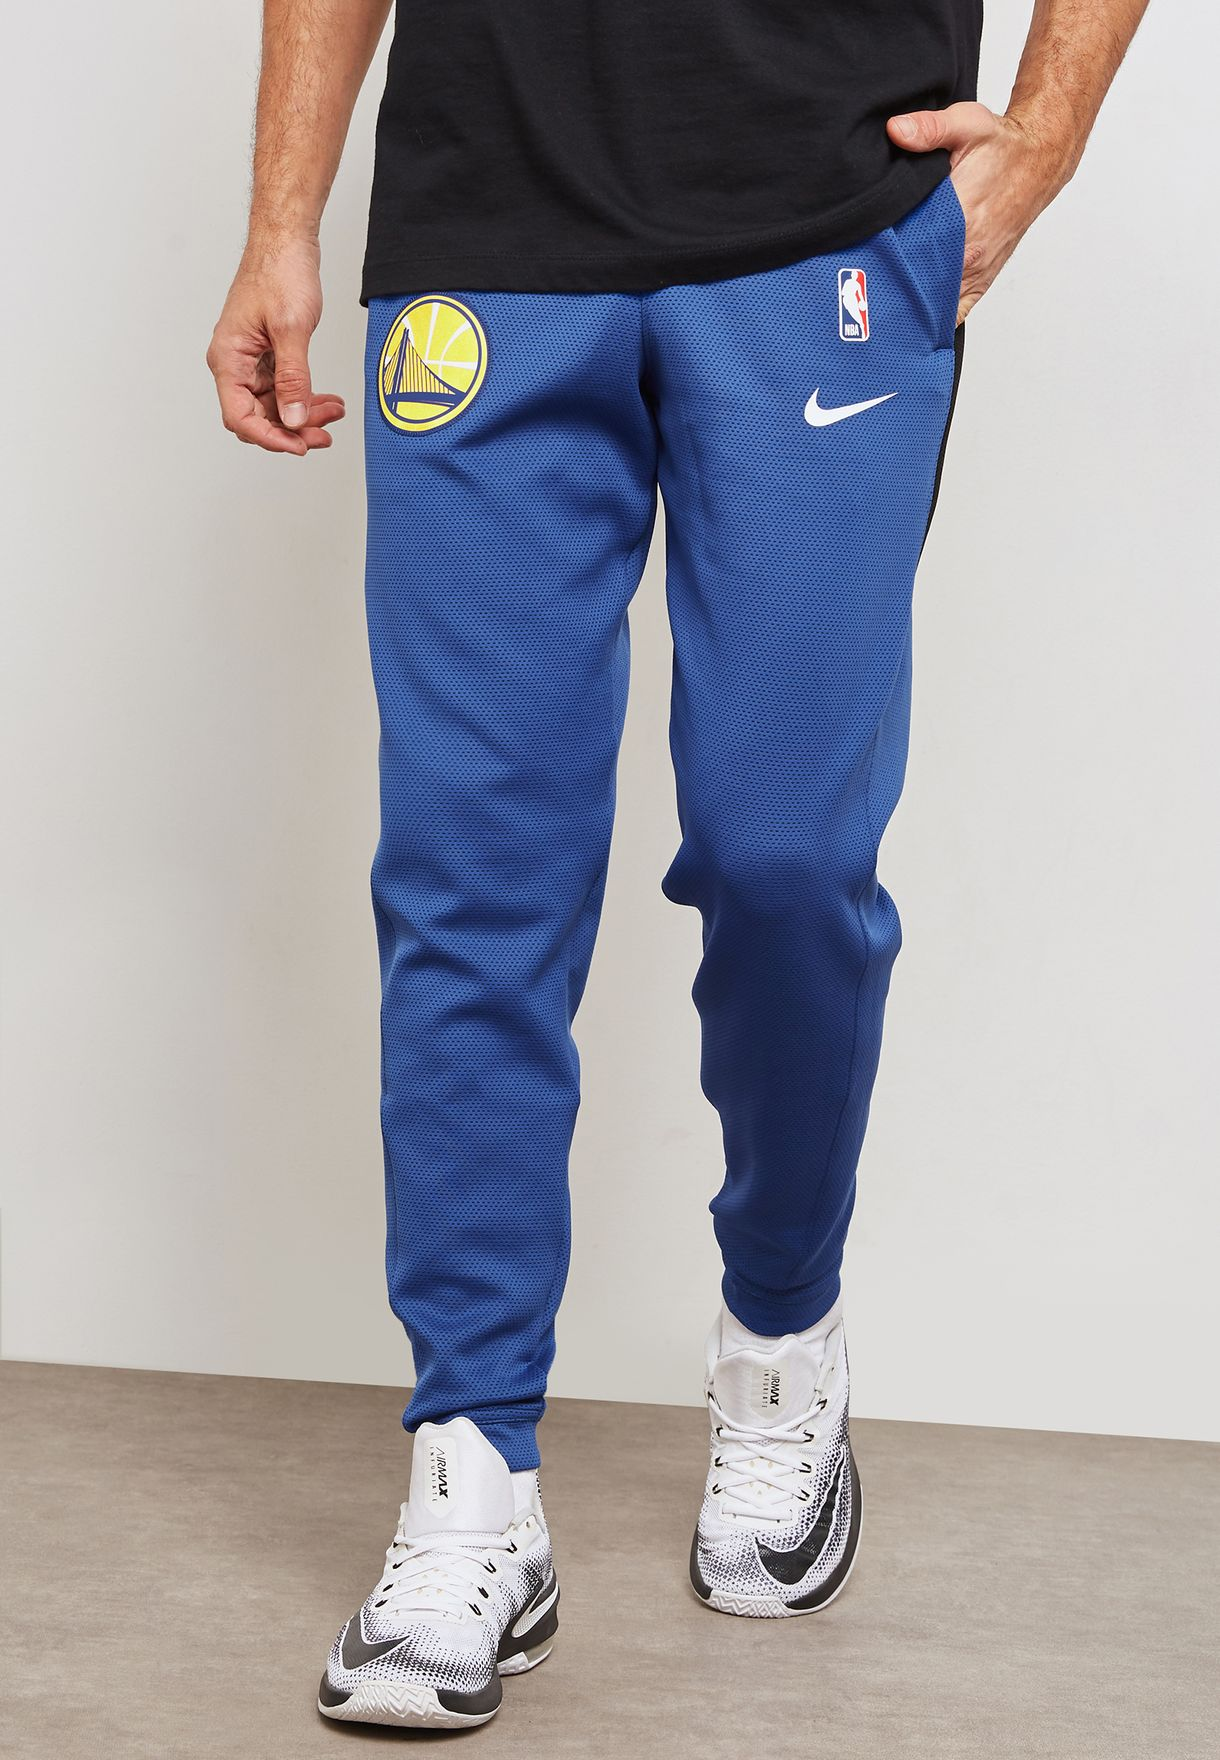 ad6c784ea23e67 Shop Nike blue Golden State Warriors Therma Flex Showtime Sweatpants ...